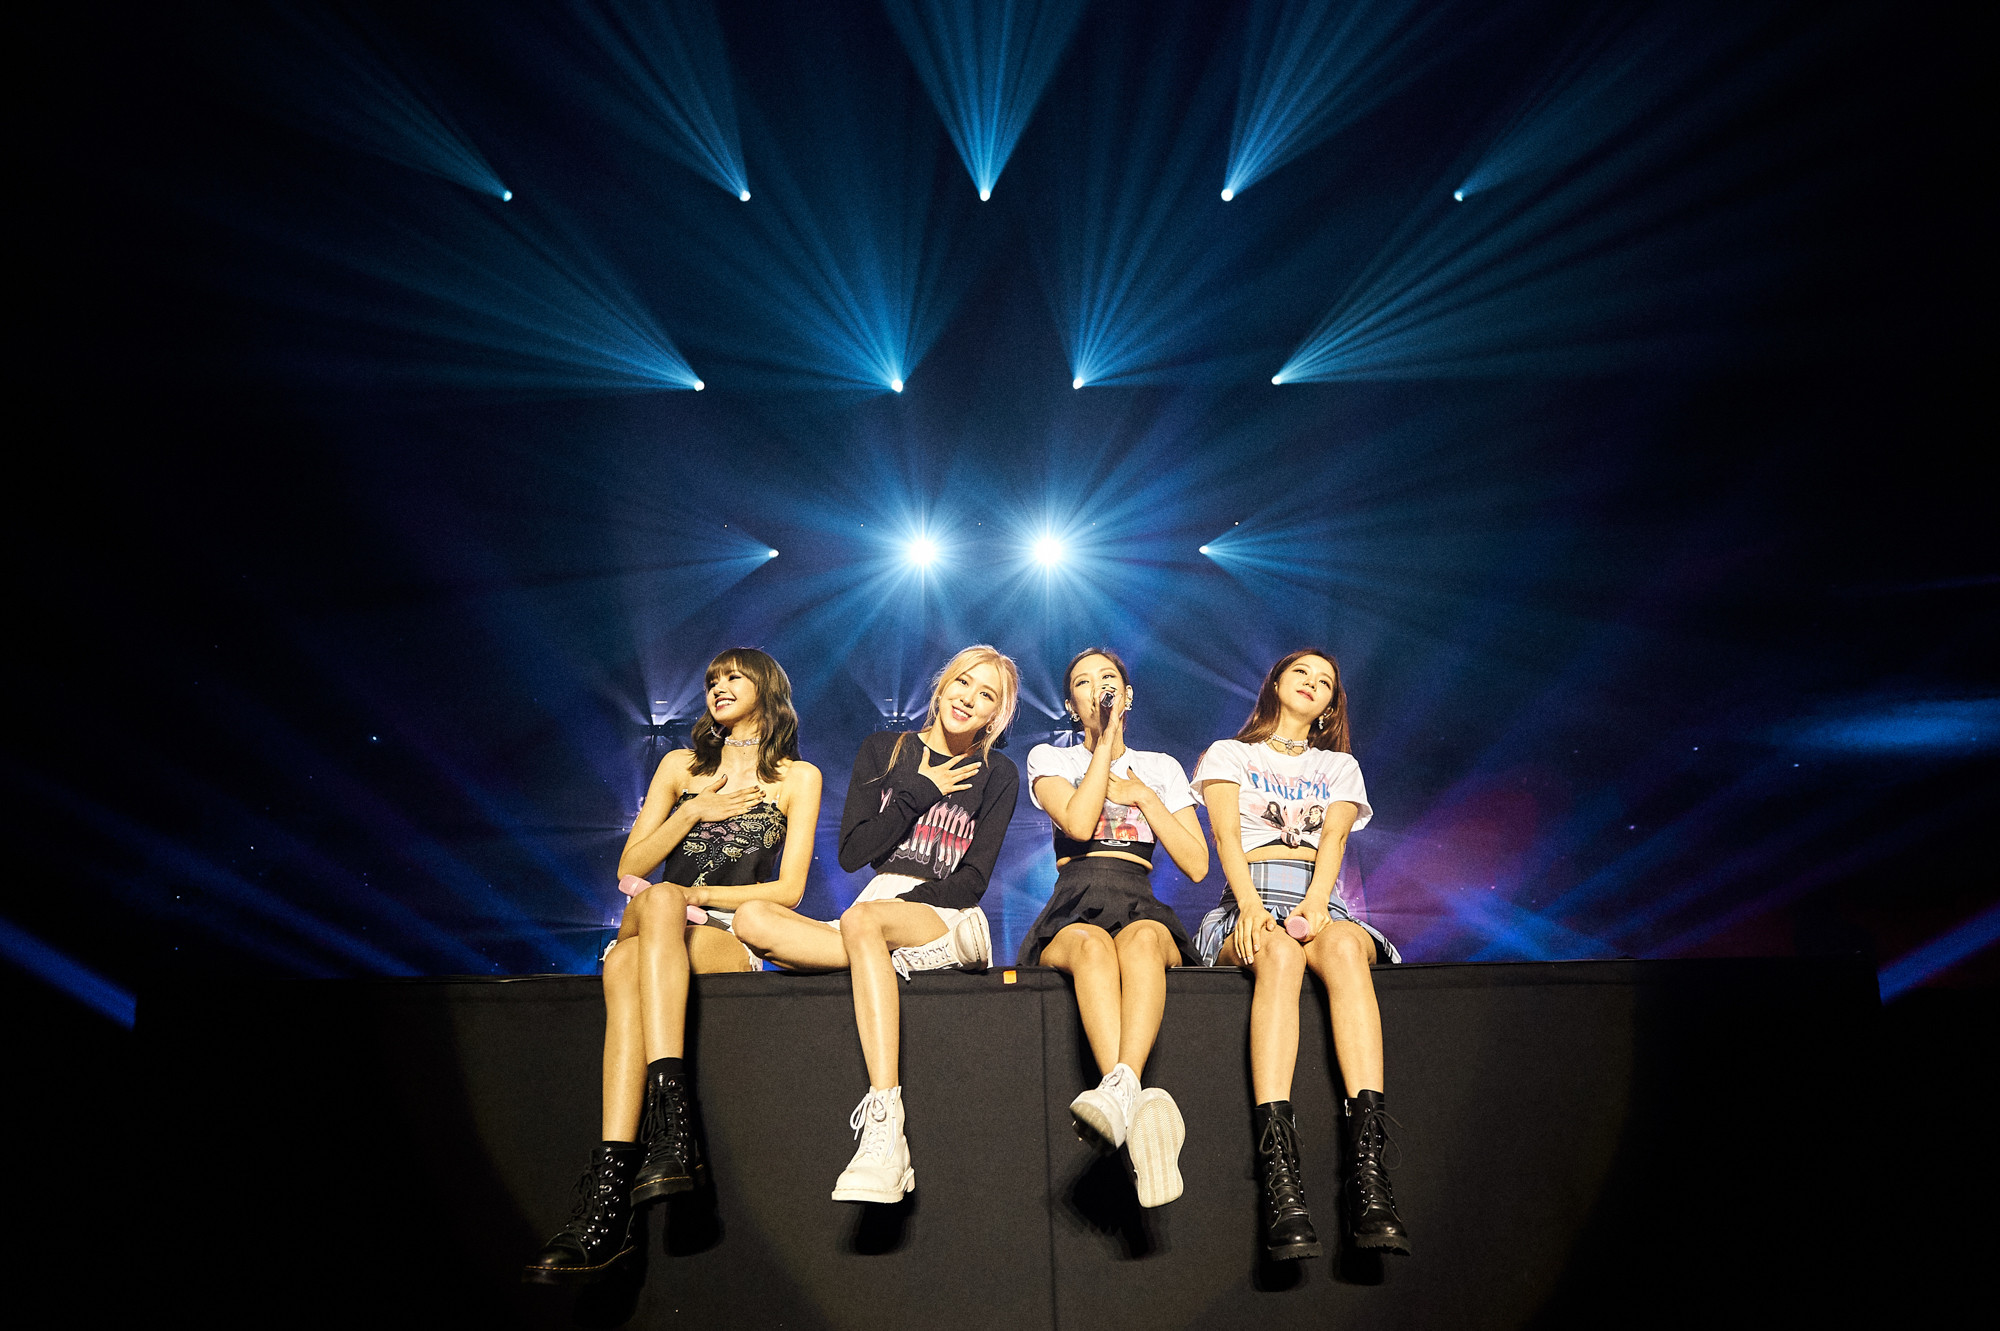 LIVE REVIEW: BLACKPINK Bring Incredible Production To Amsterdam's AFAS Live